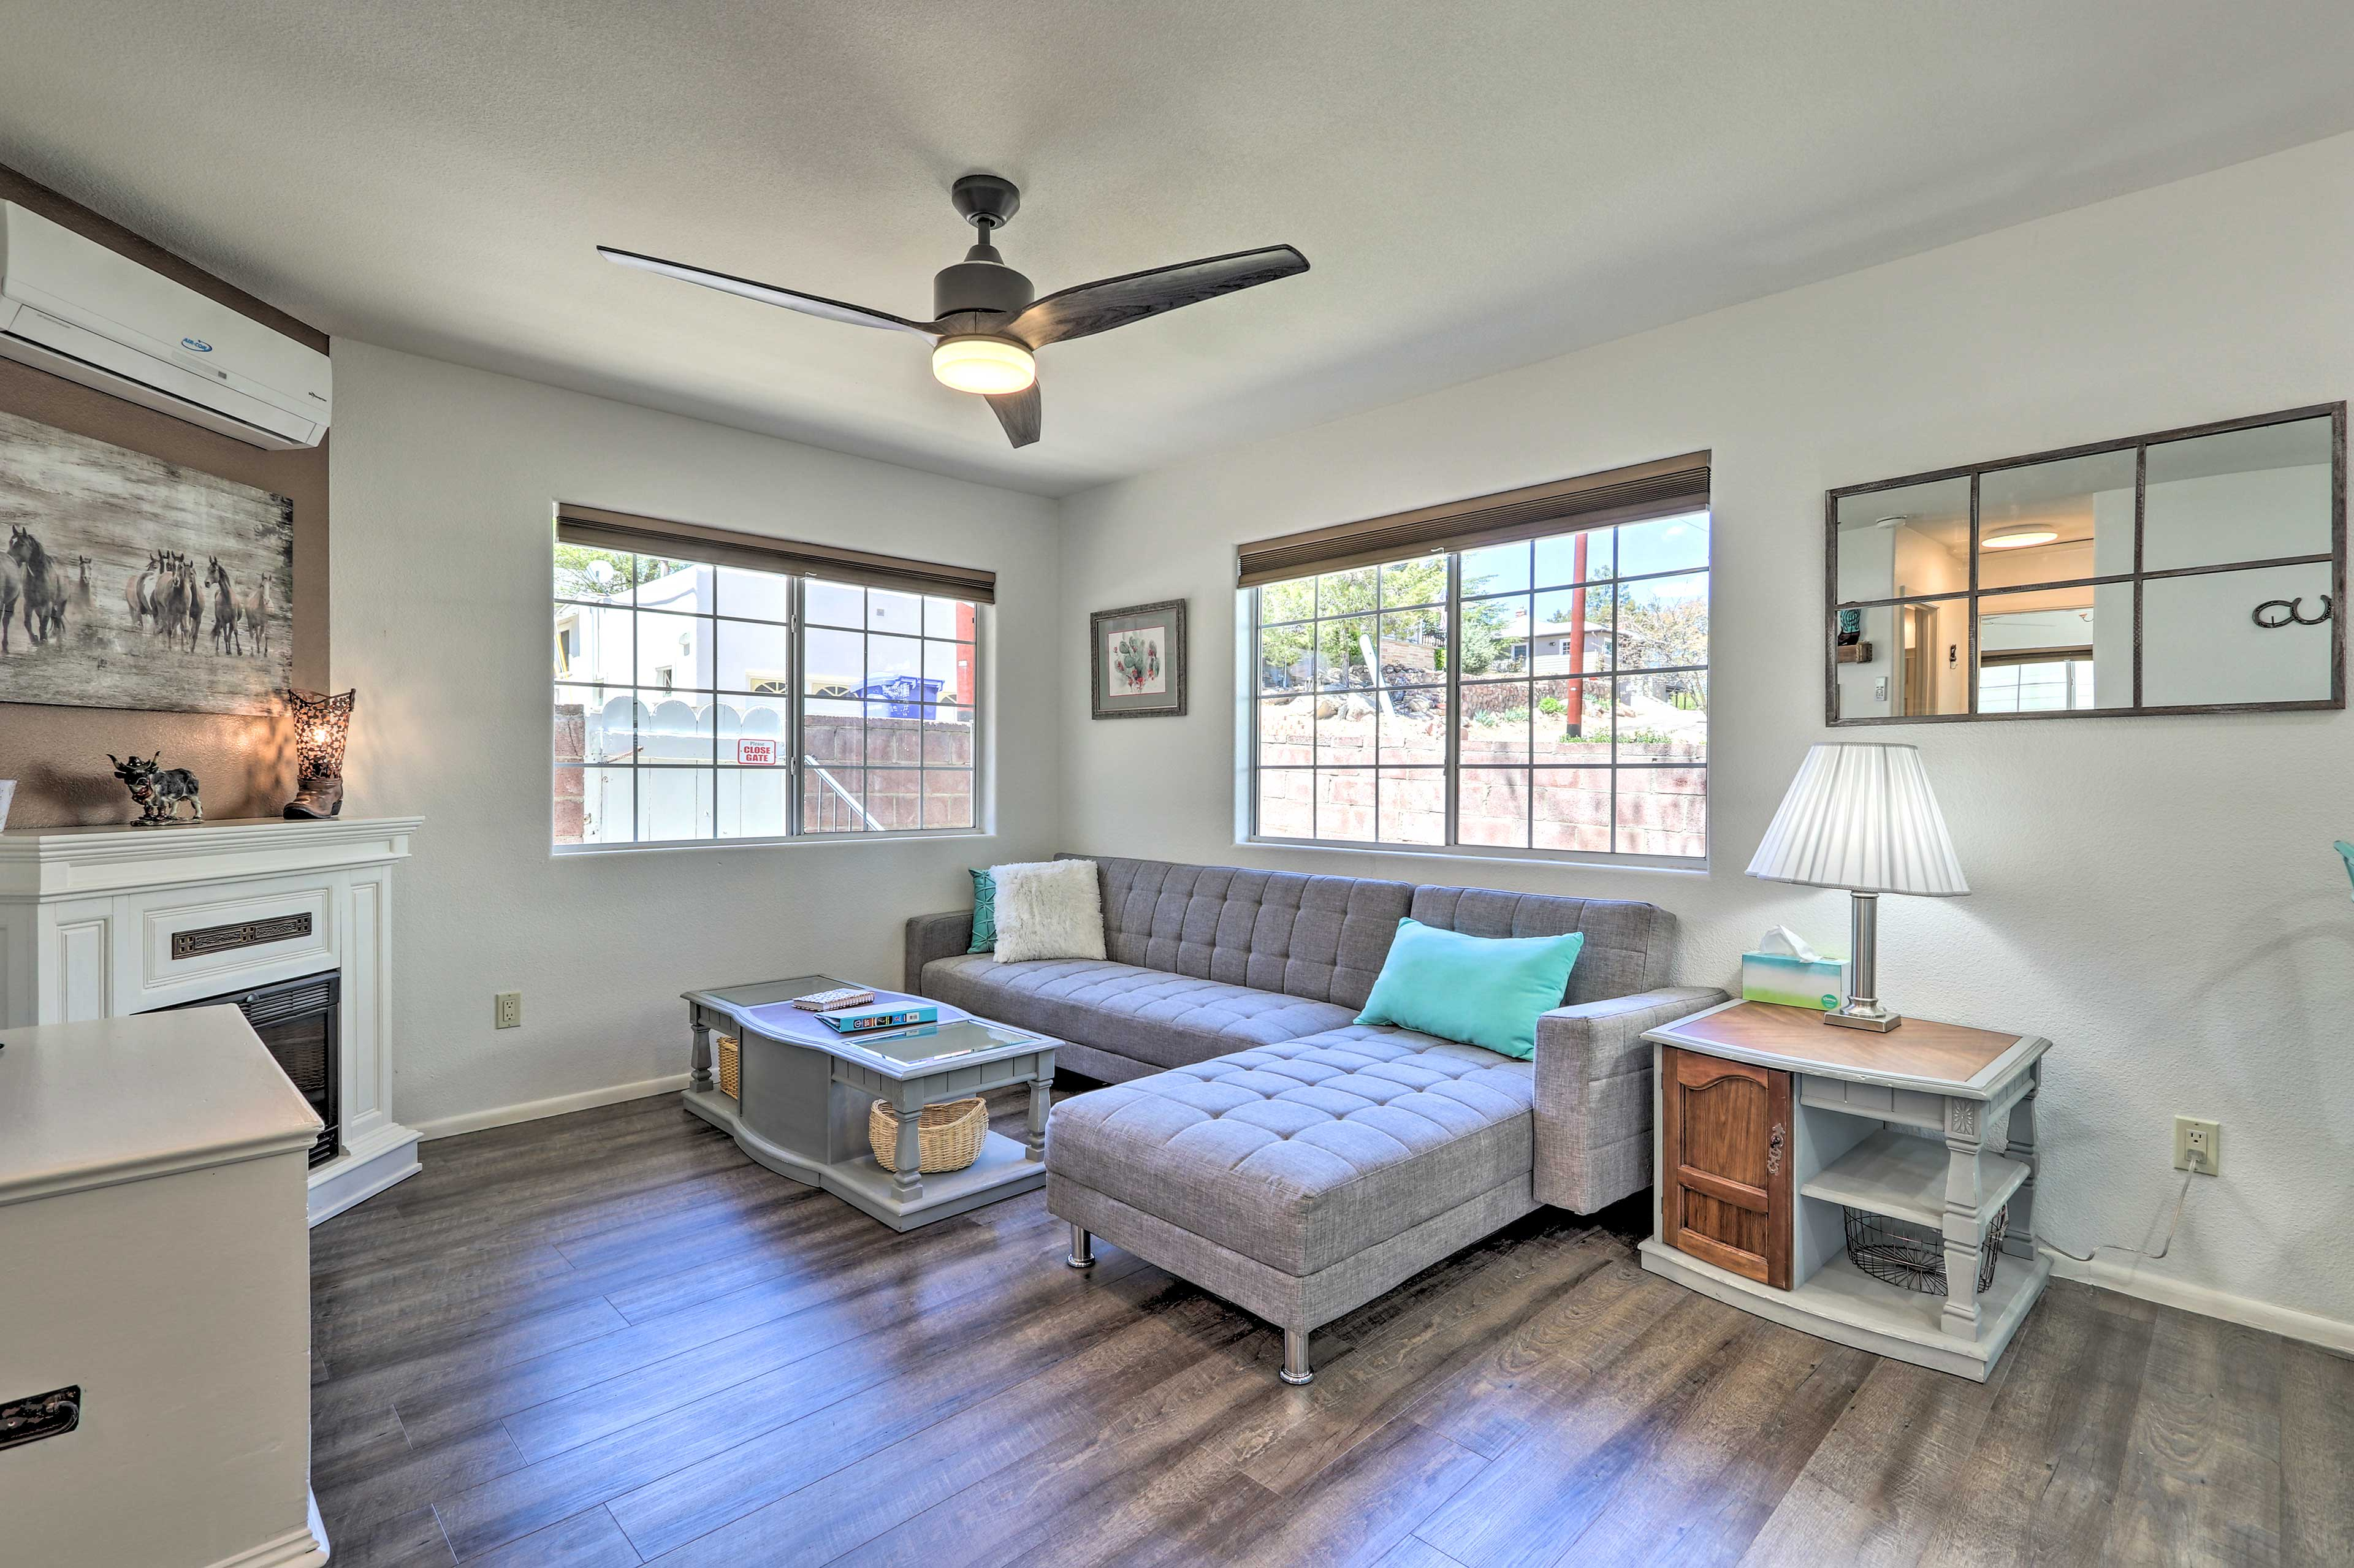 This tastefully furnished home has ample rustic charm!